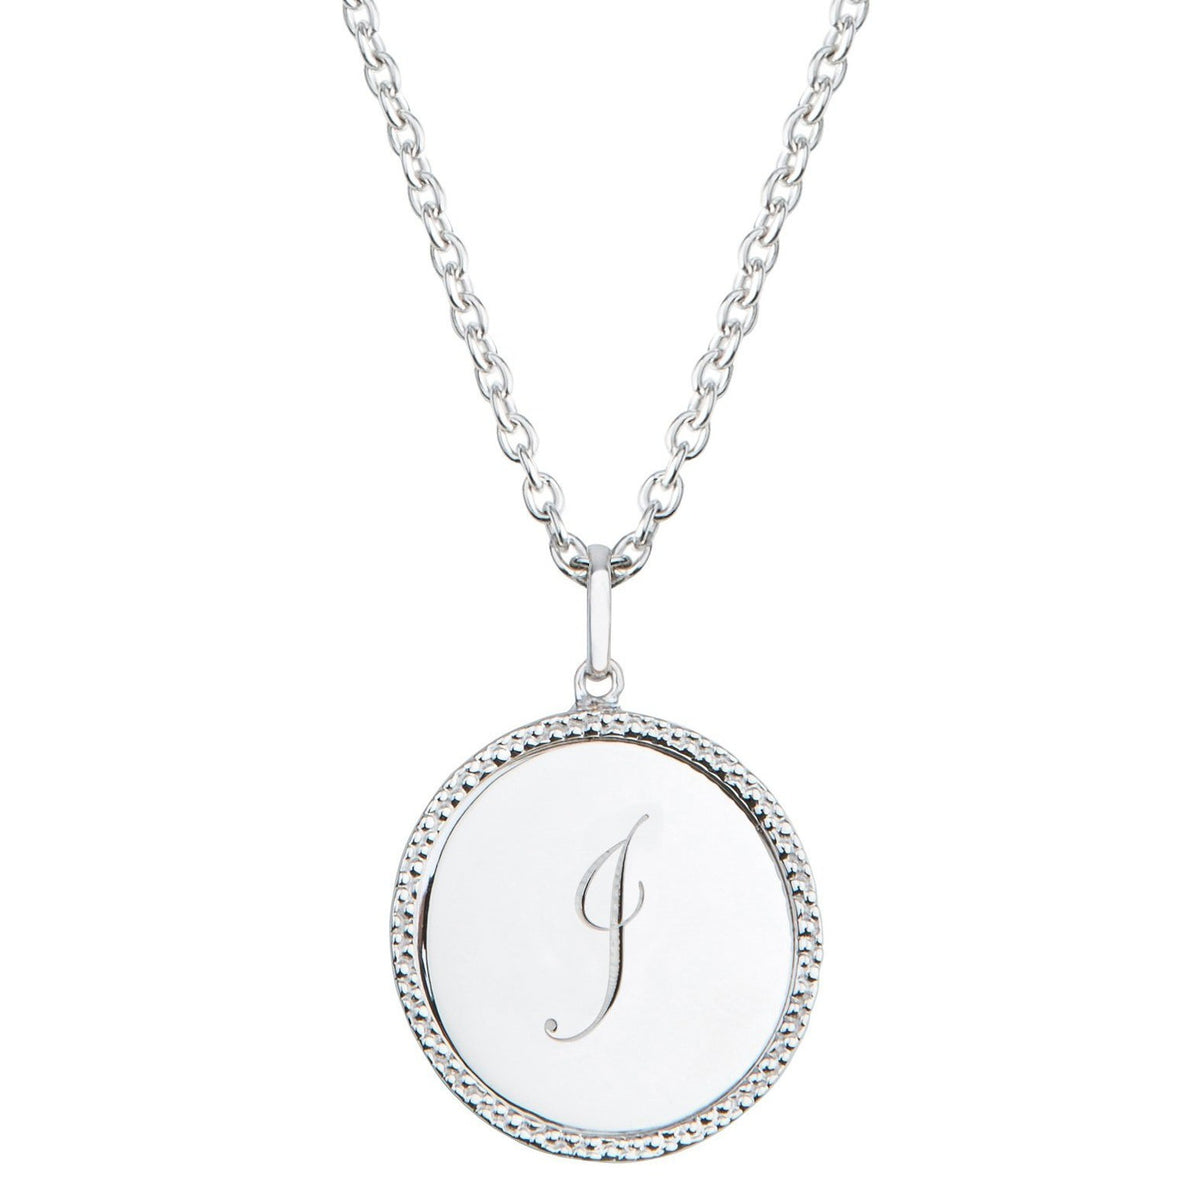 Echo Silver 'I' Initial Necklace